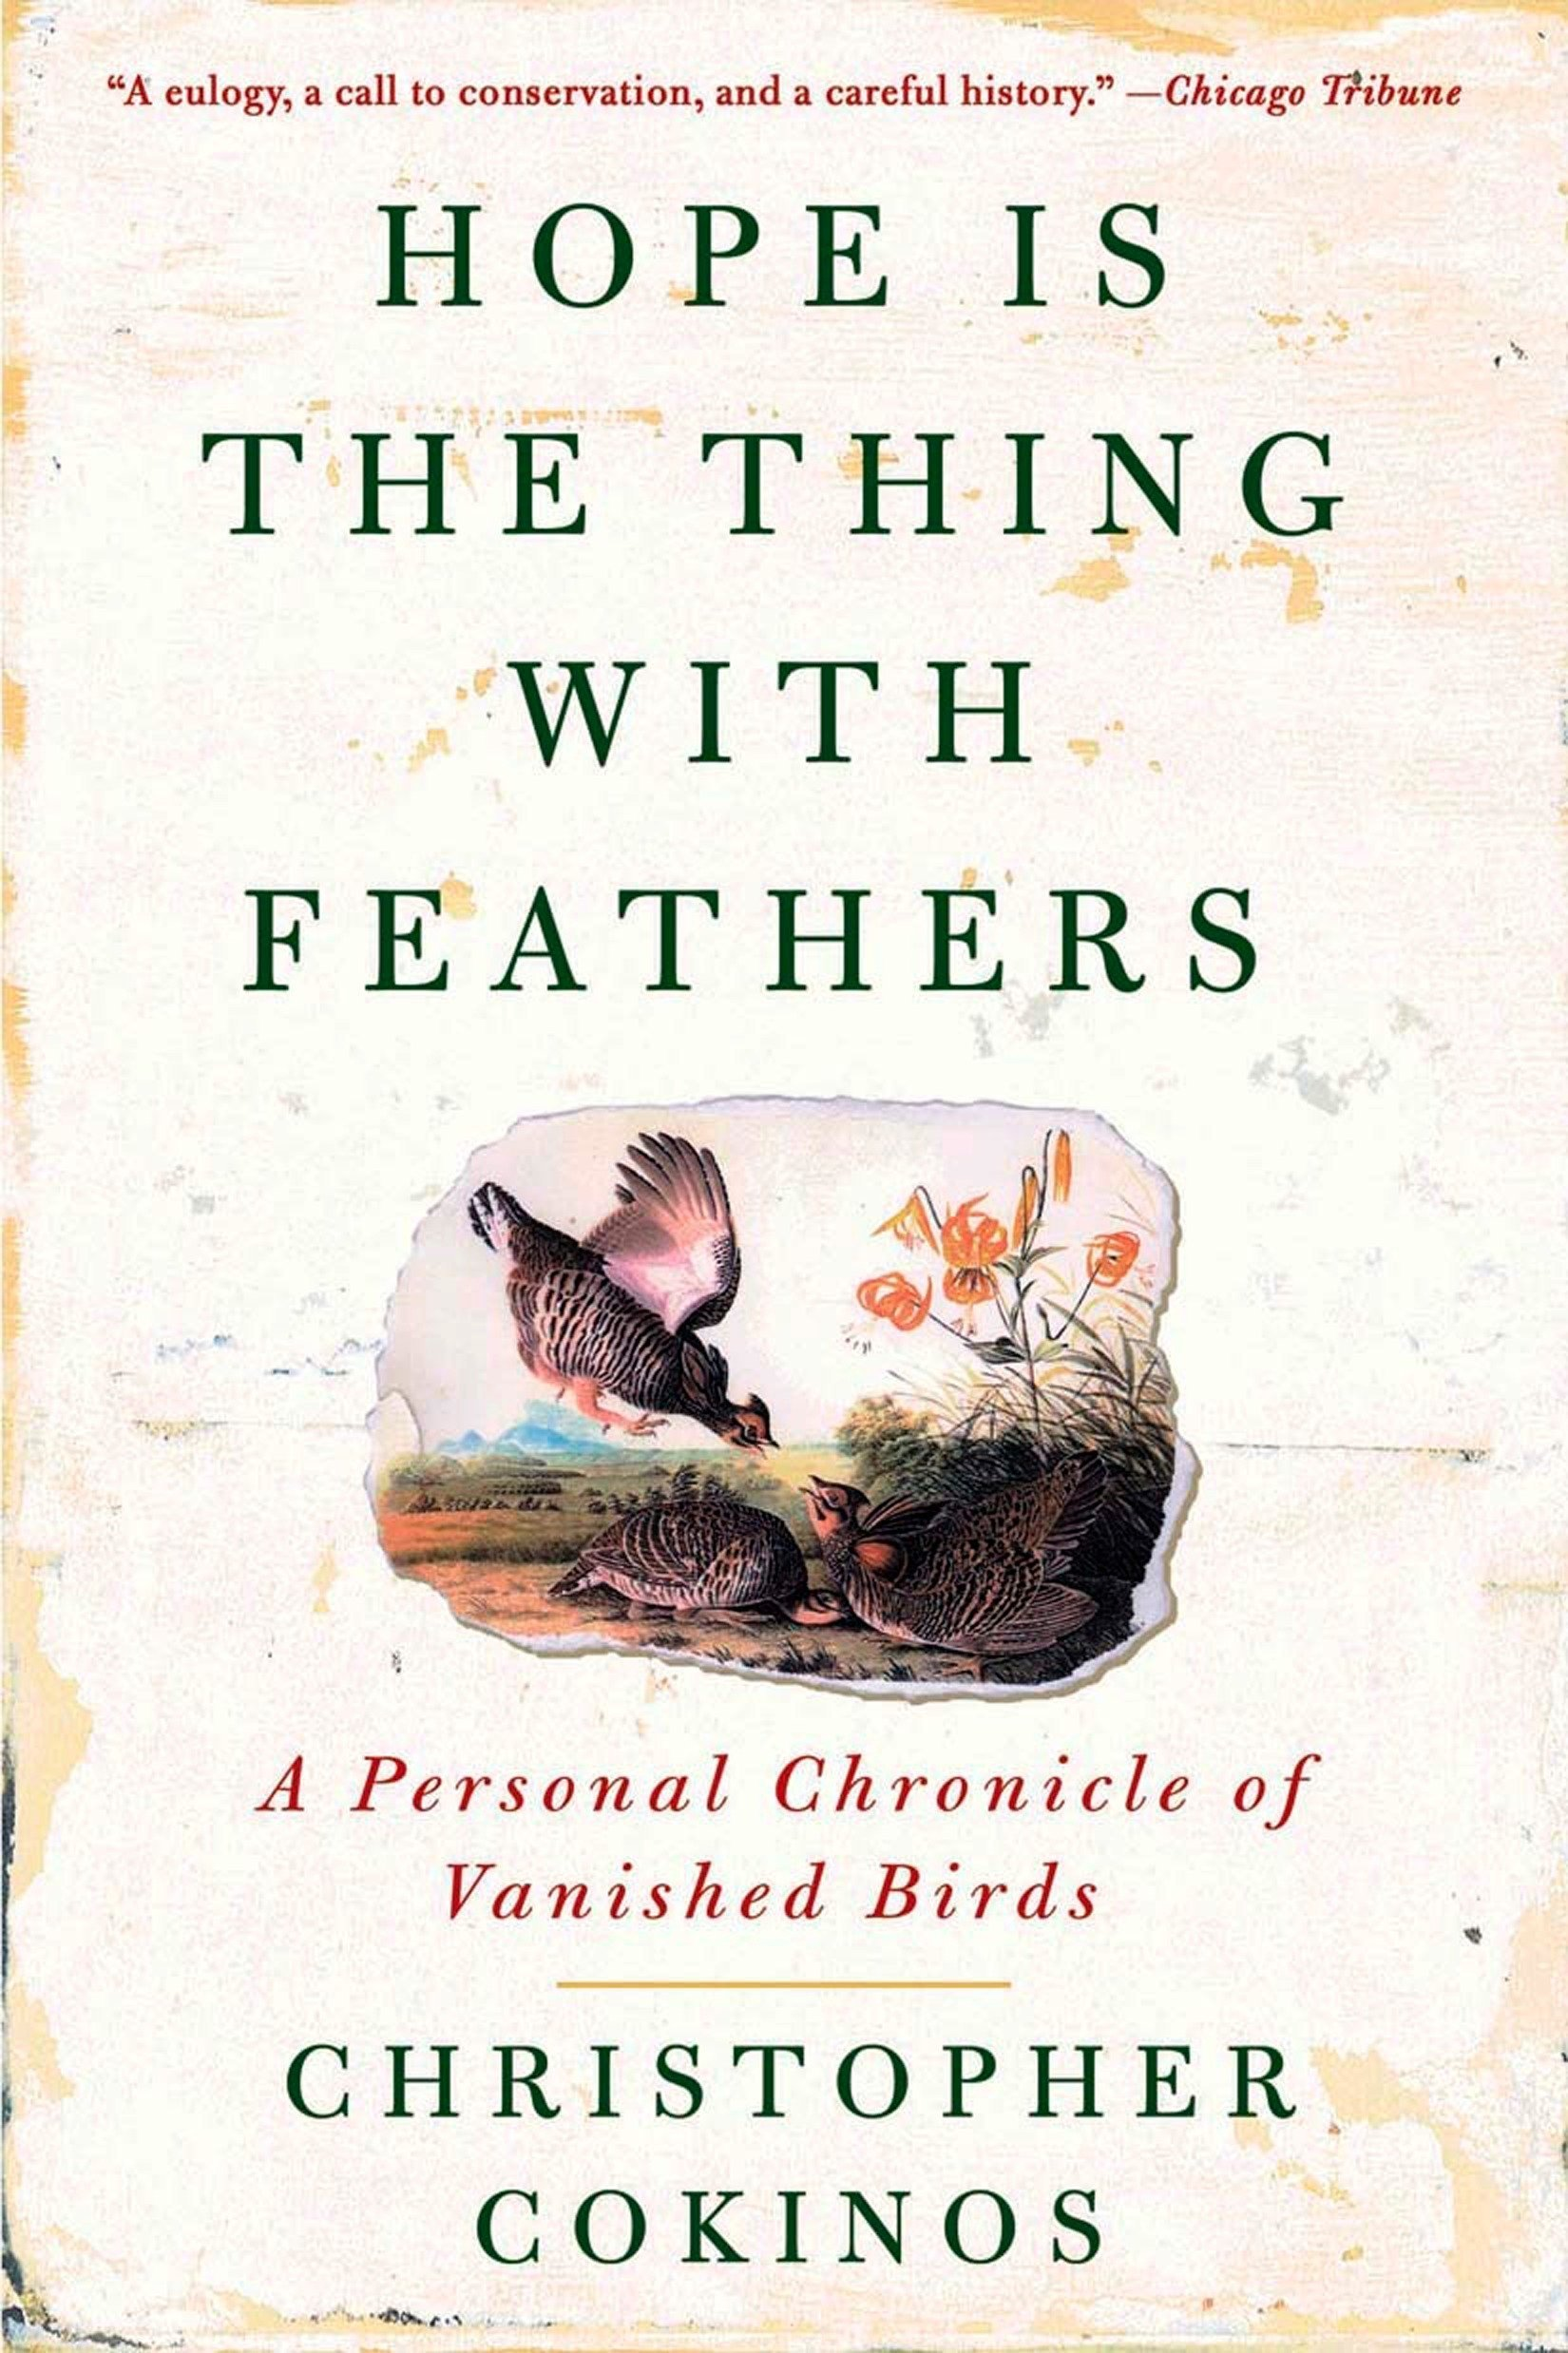 Hope Is the Thing with Feathers: A Personal Chronicle of Vanished Birds, Cokinos, Christopher